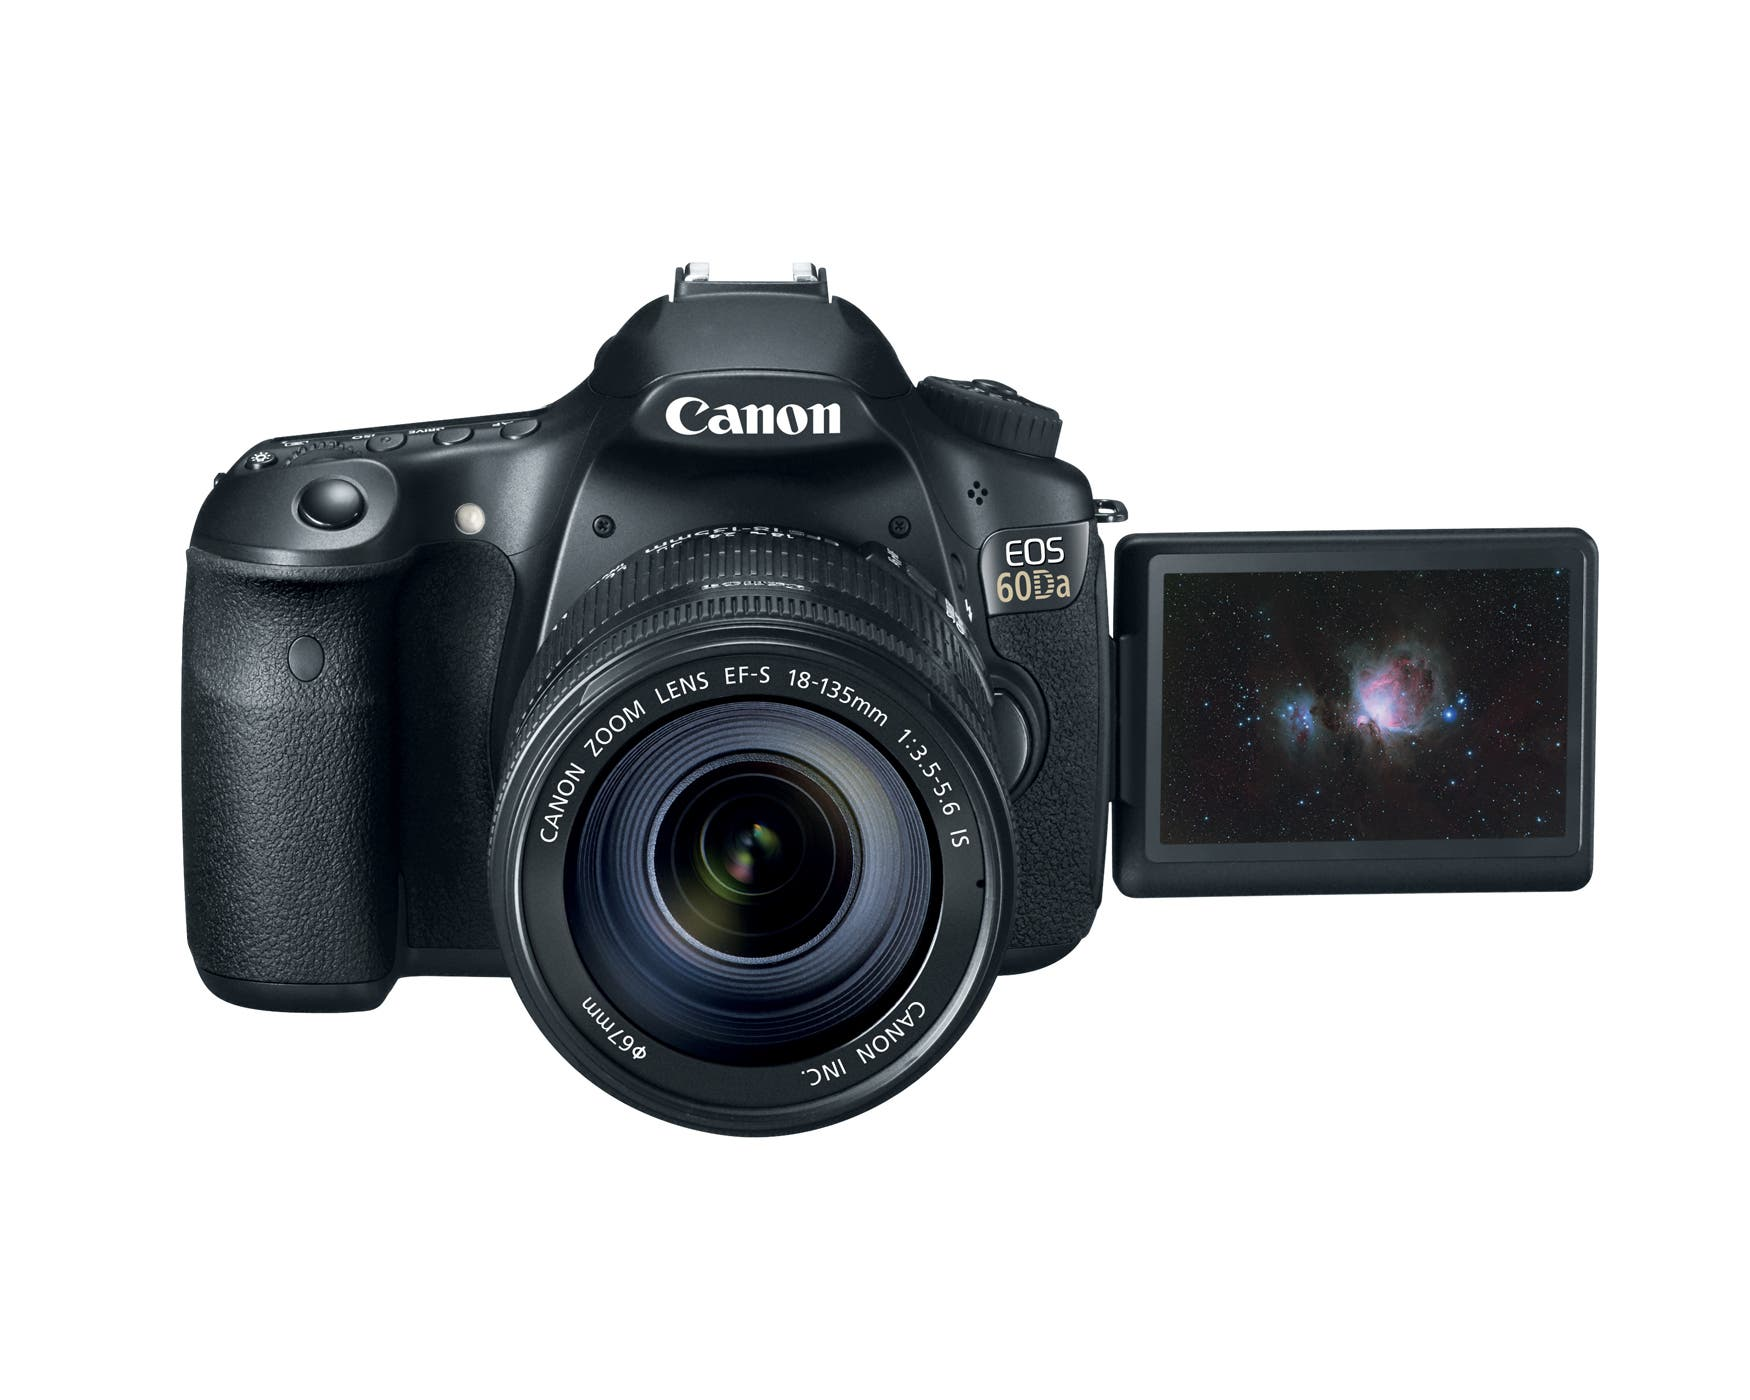 Canon Announces New 60D A For Astrophotography: Curiously Timed with Men in Black III Promos